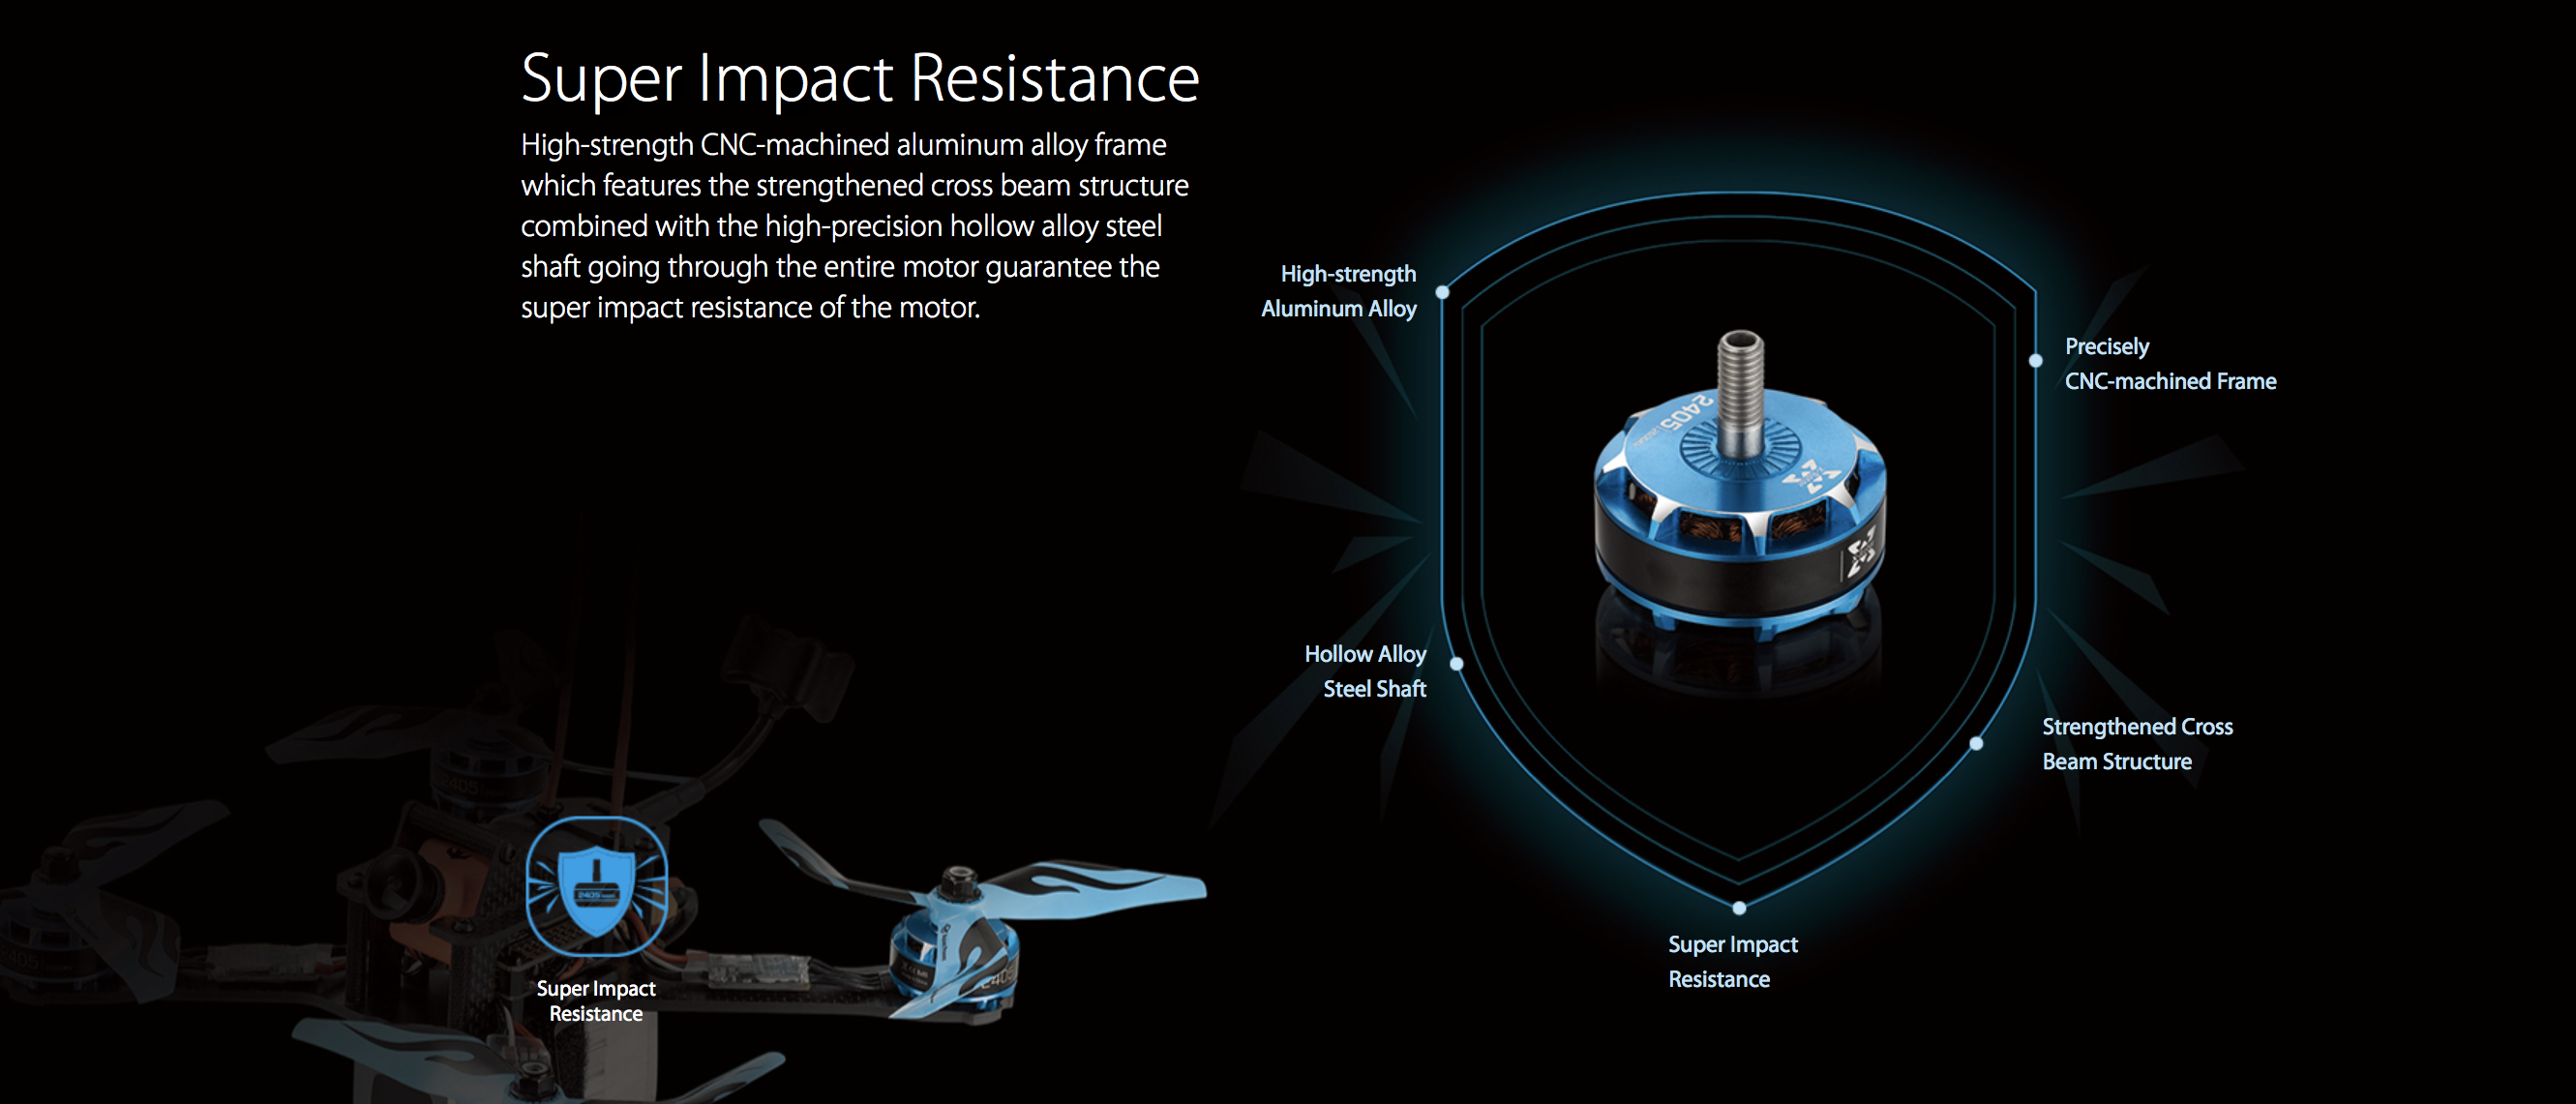 Super Impact Resistance: High-strength CNC-machined aluminum alloy frame which features the strengthened cross beam structure combined with the high-precision hollow alloy steel shaft going through the entire motor guarantee the super impact resistance of the motor.